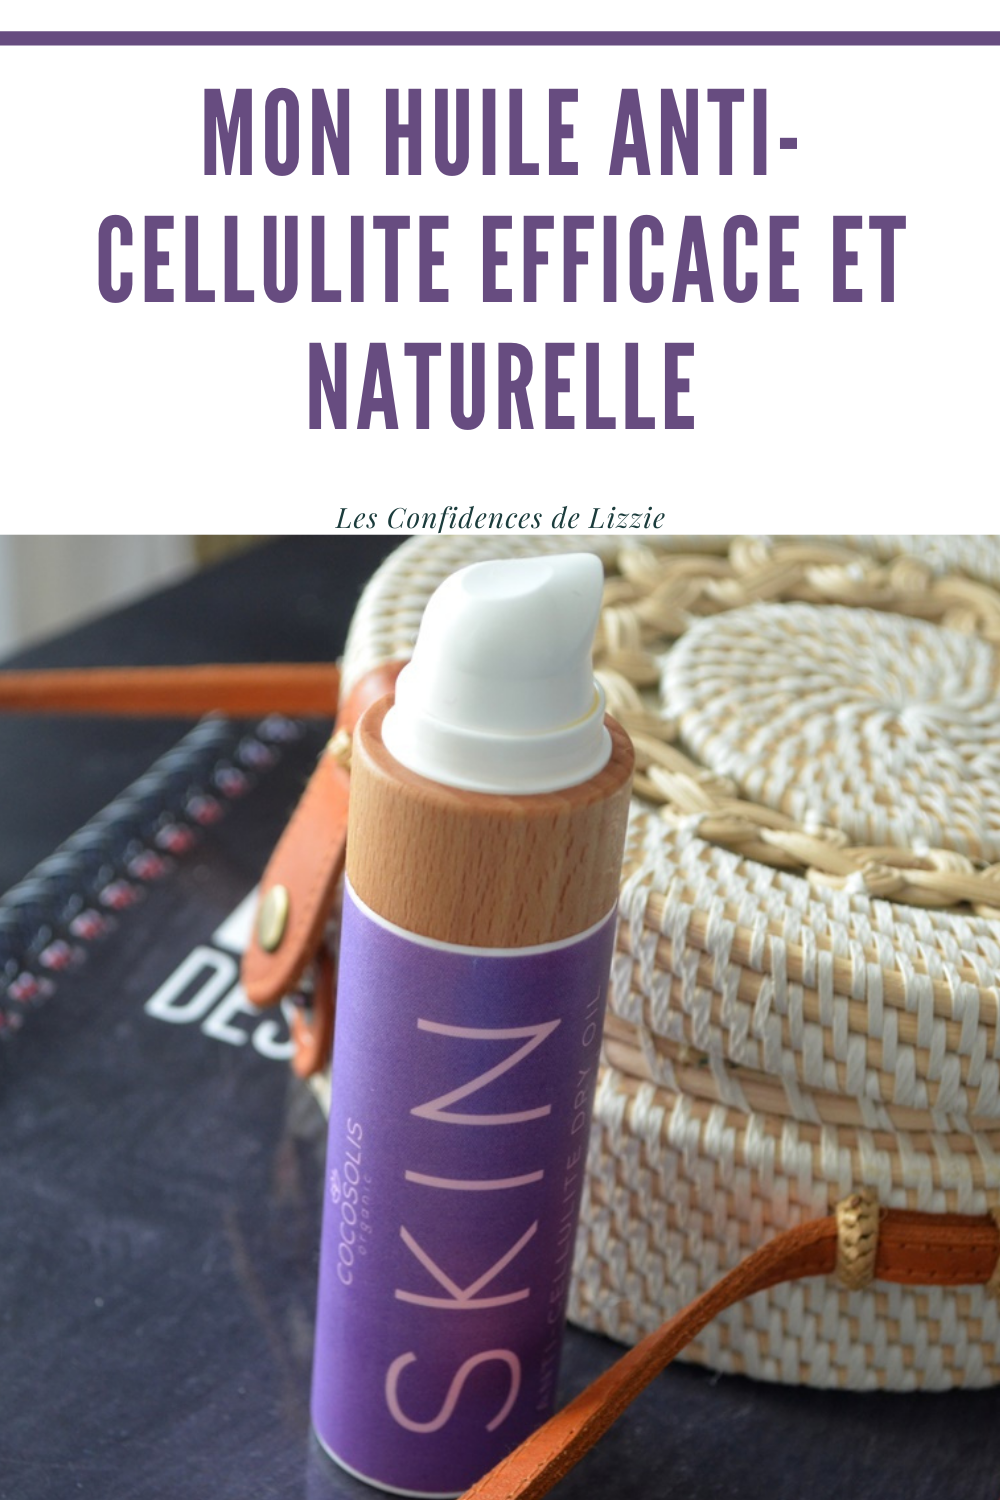 huile-anti-cellulite-efficace-naturelle-cocosolis